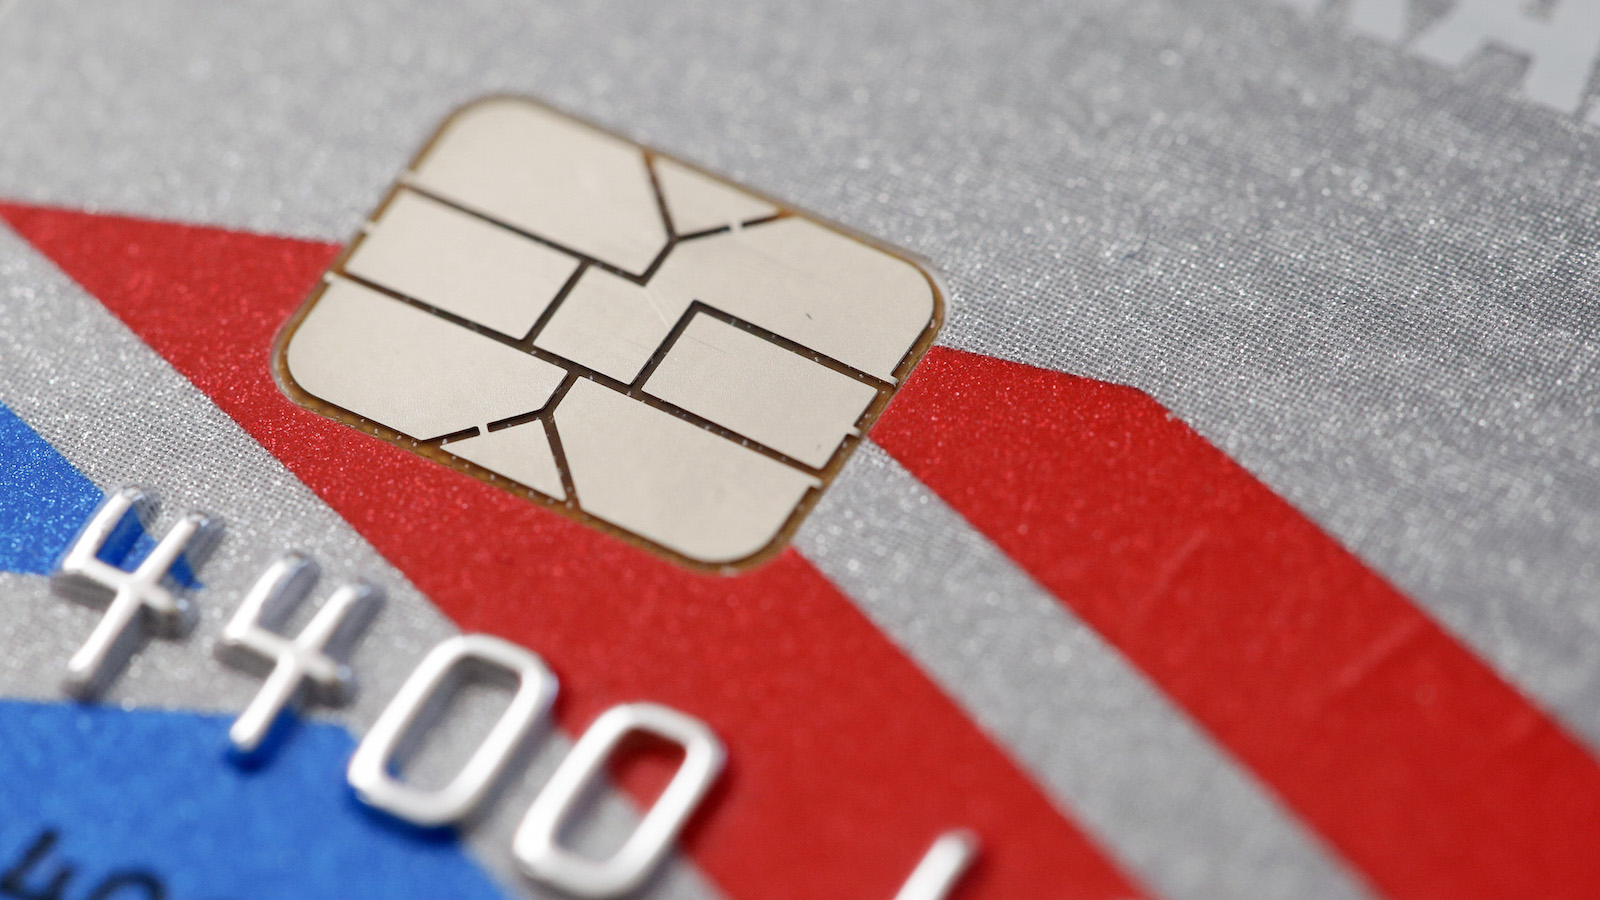 FILE - This Wednesday, June 10, 2015, file photo, shows a chip-based credit card, in Philadelphia. Millions of Americans are getting new credit and debit cards with chip technology and that's causing big headaches for subscription companies that rely on working cards to charge their customers every month.